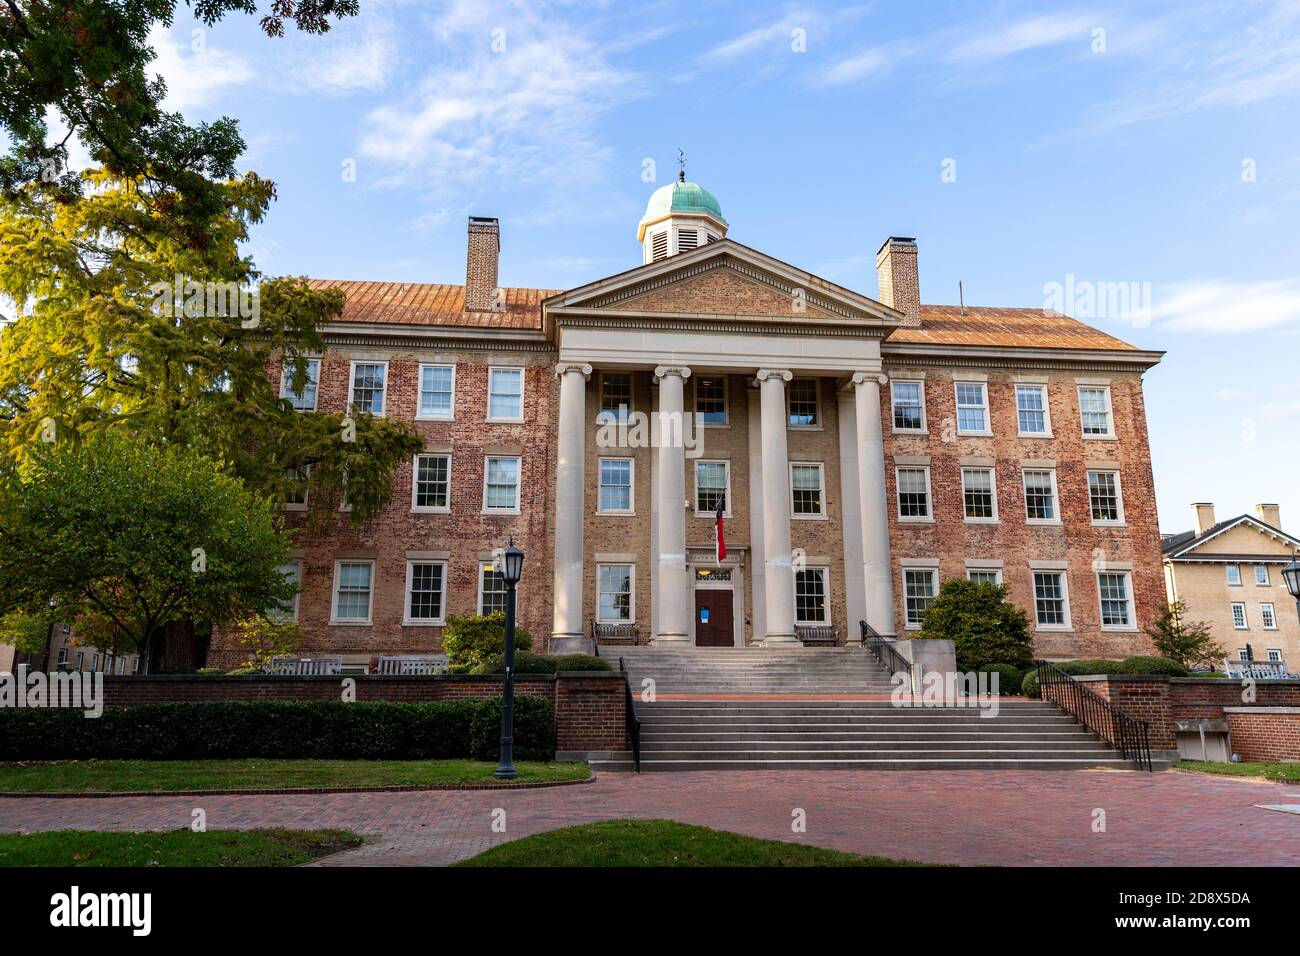 Chapel Hill, NC / USA - October 22, 2020: The South Building on the campus of the University of North Carolina Chapel Hill Stock Photo